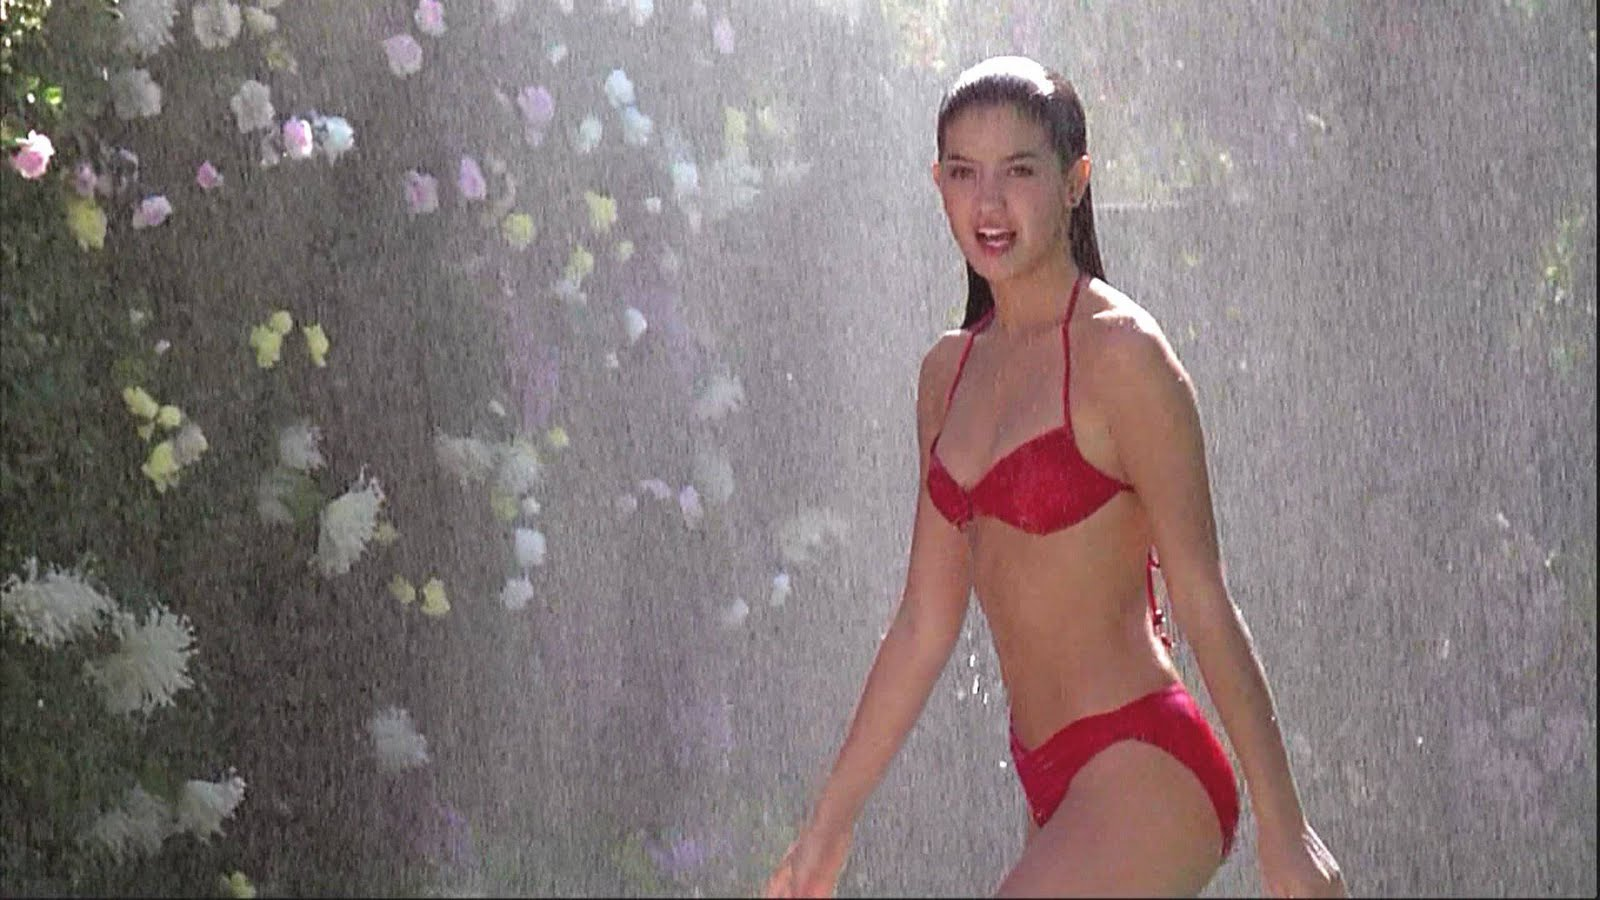 Phoebe Cates Fast Times At Ridgemont High